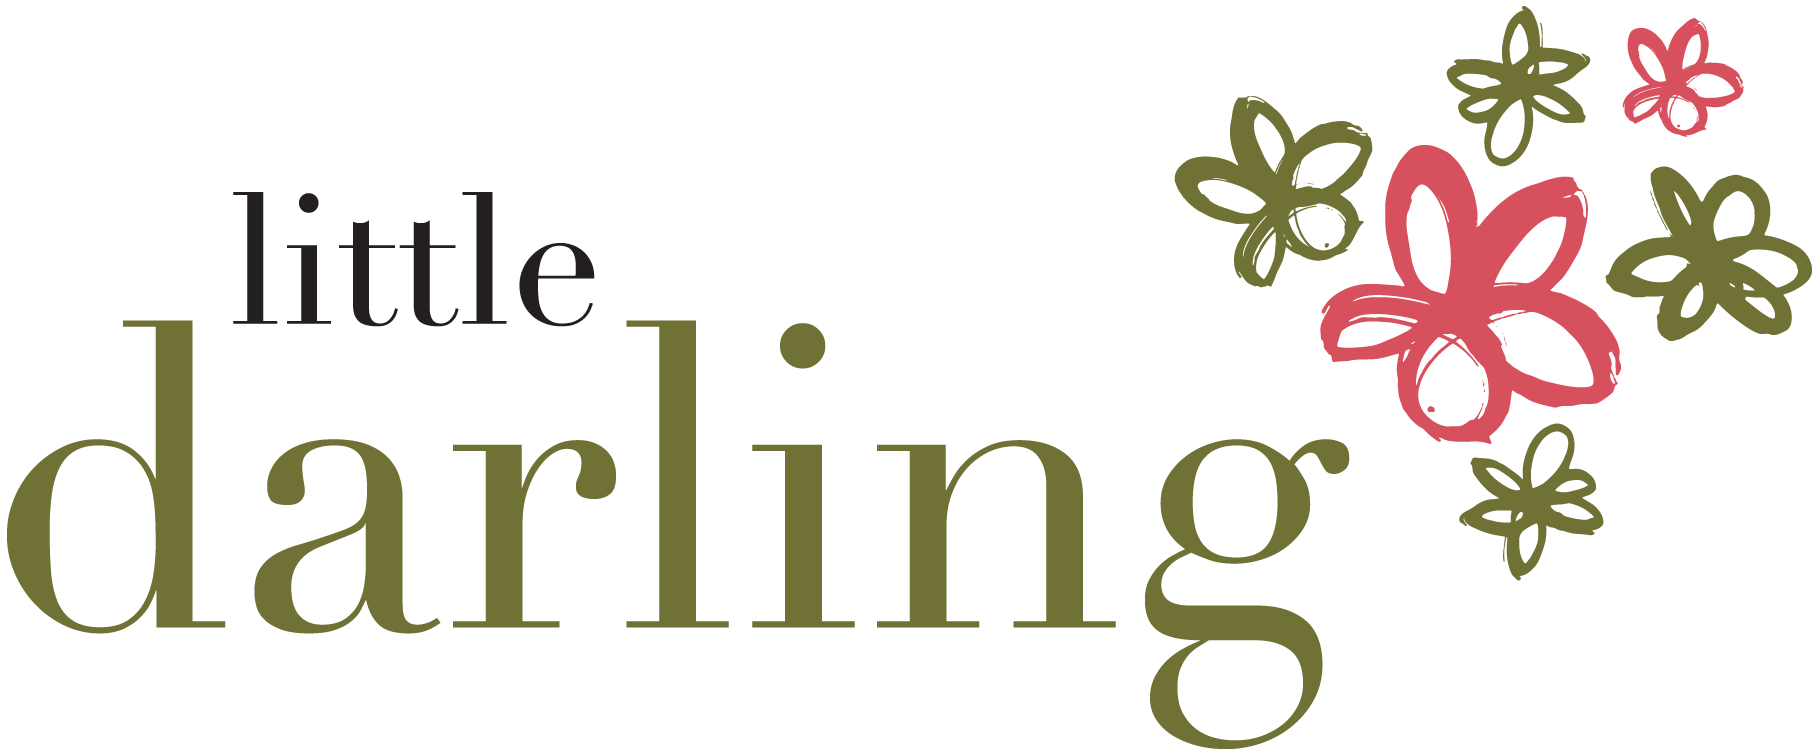 Little Darling logo colour.png